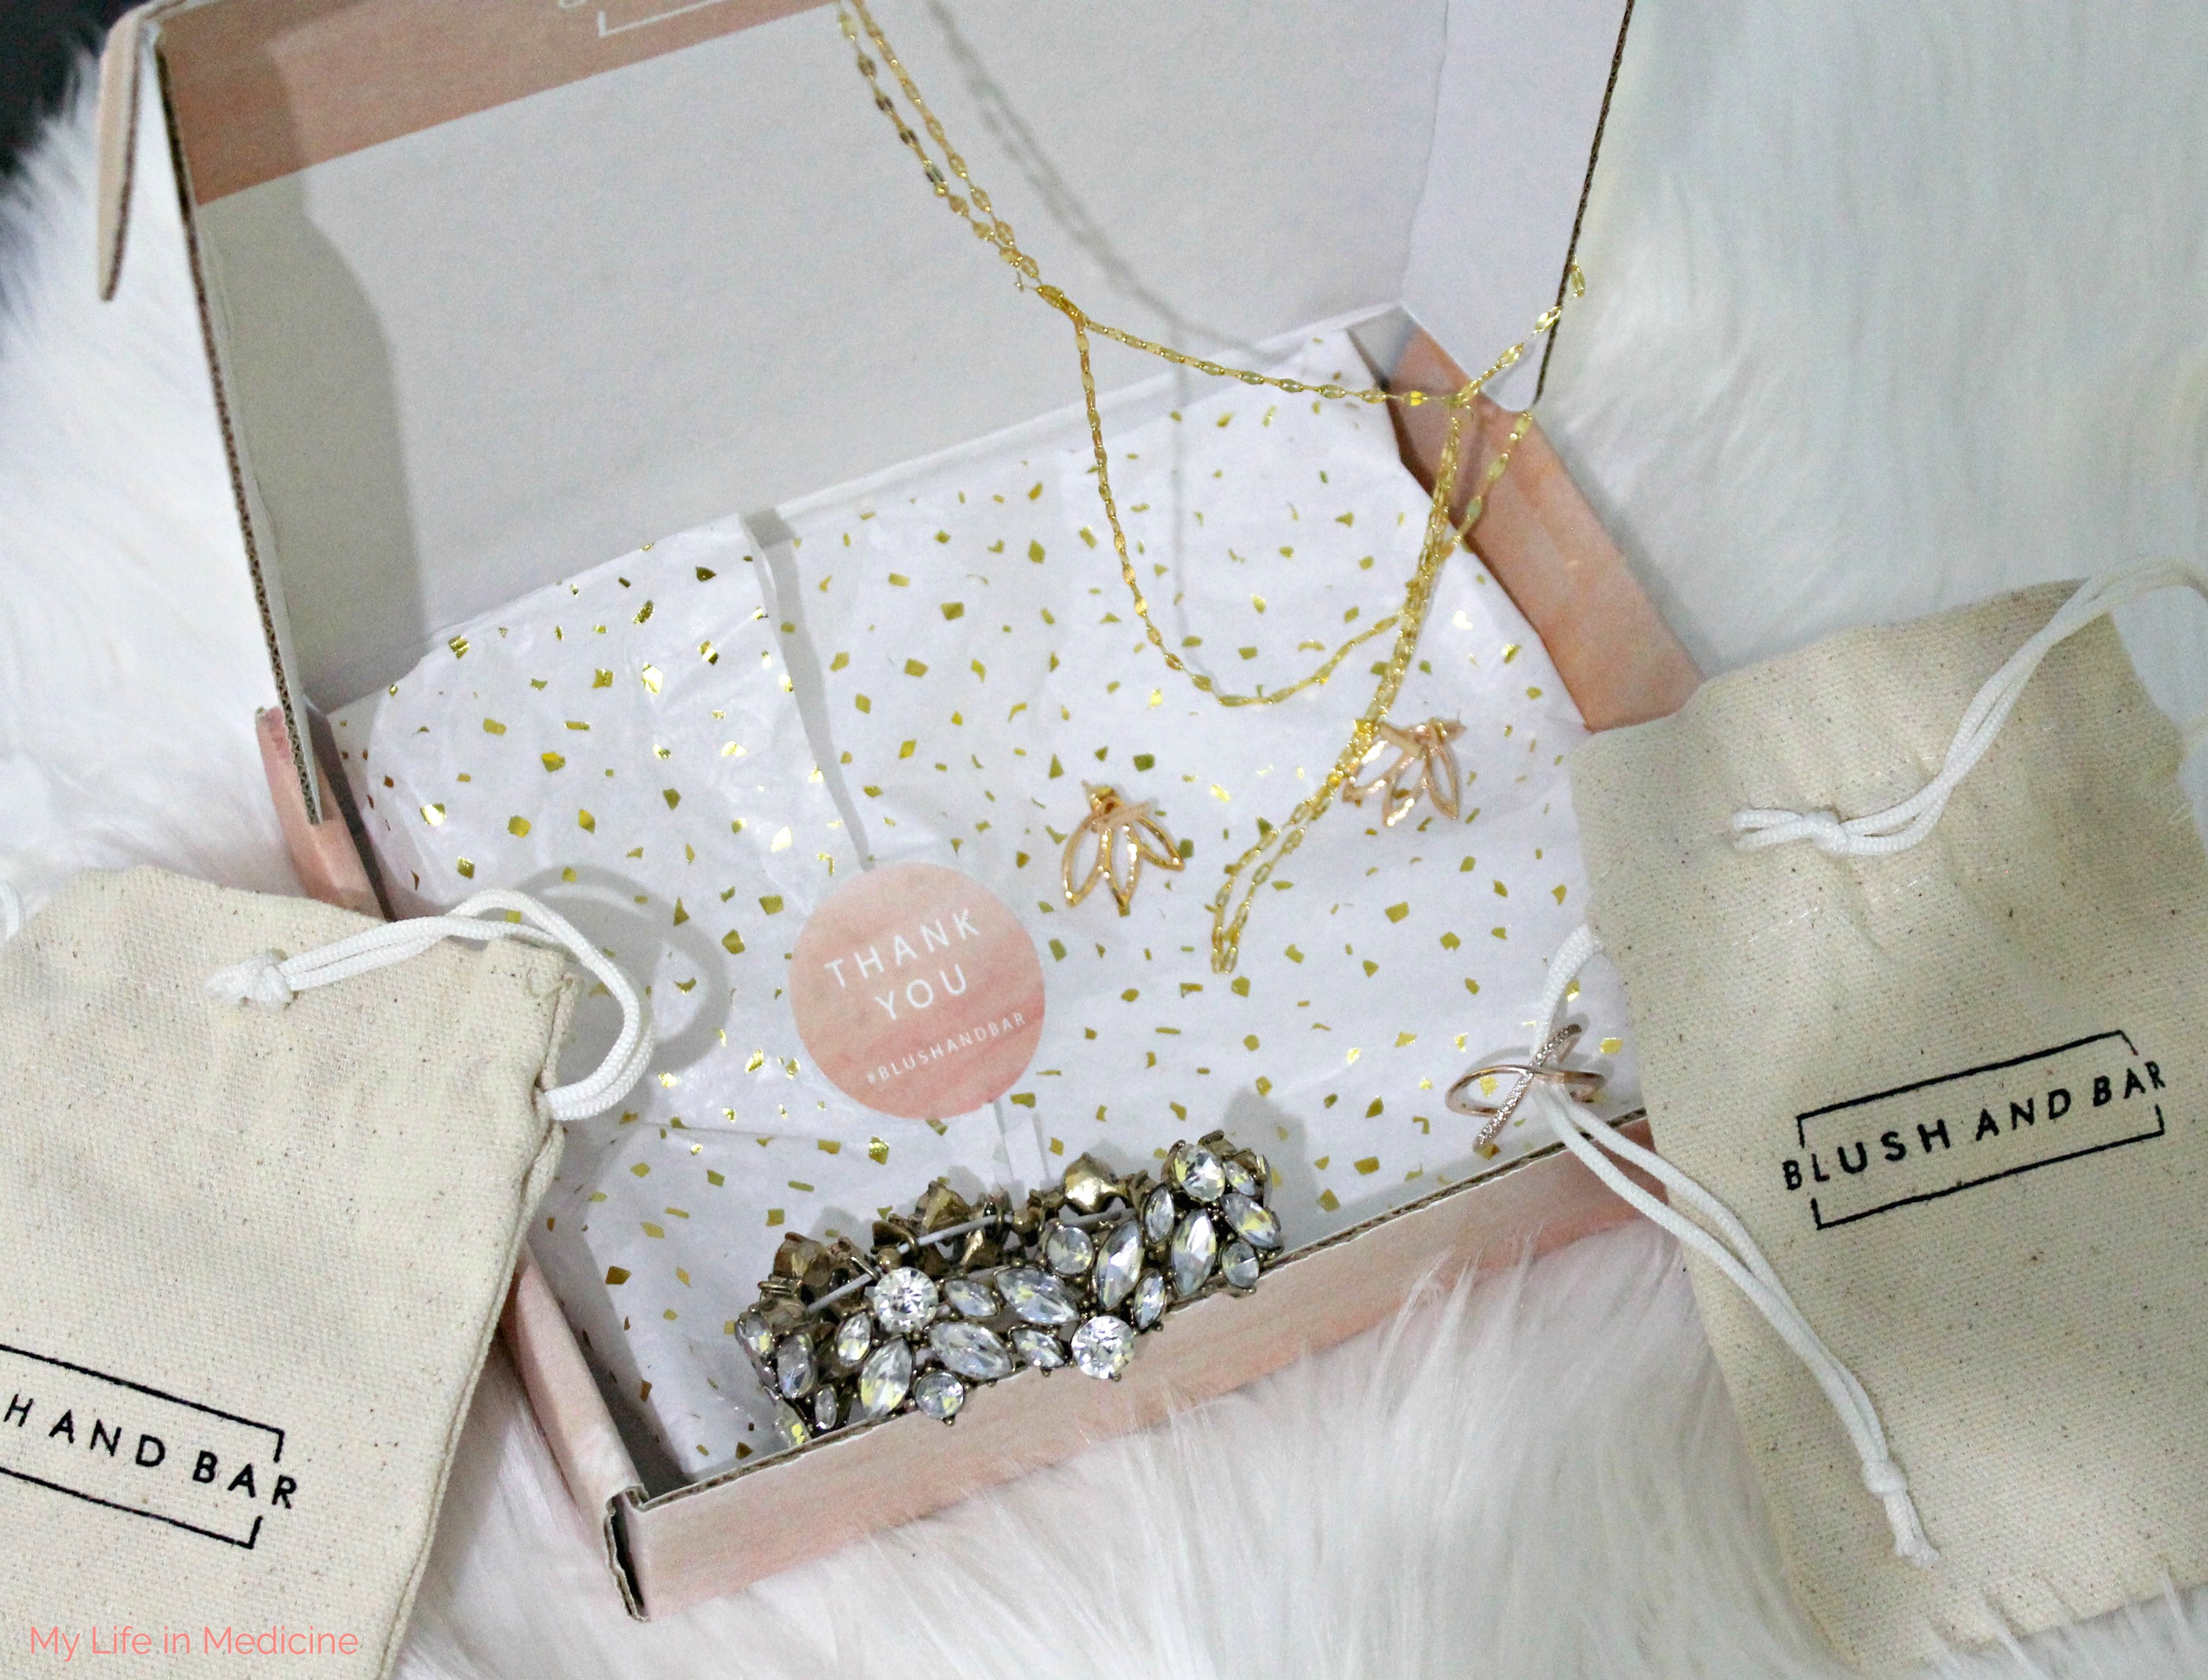 Blush Box Subscrption Box